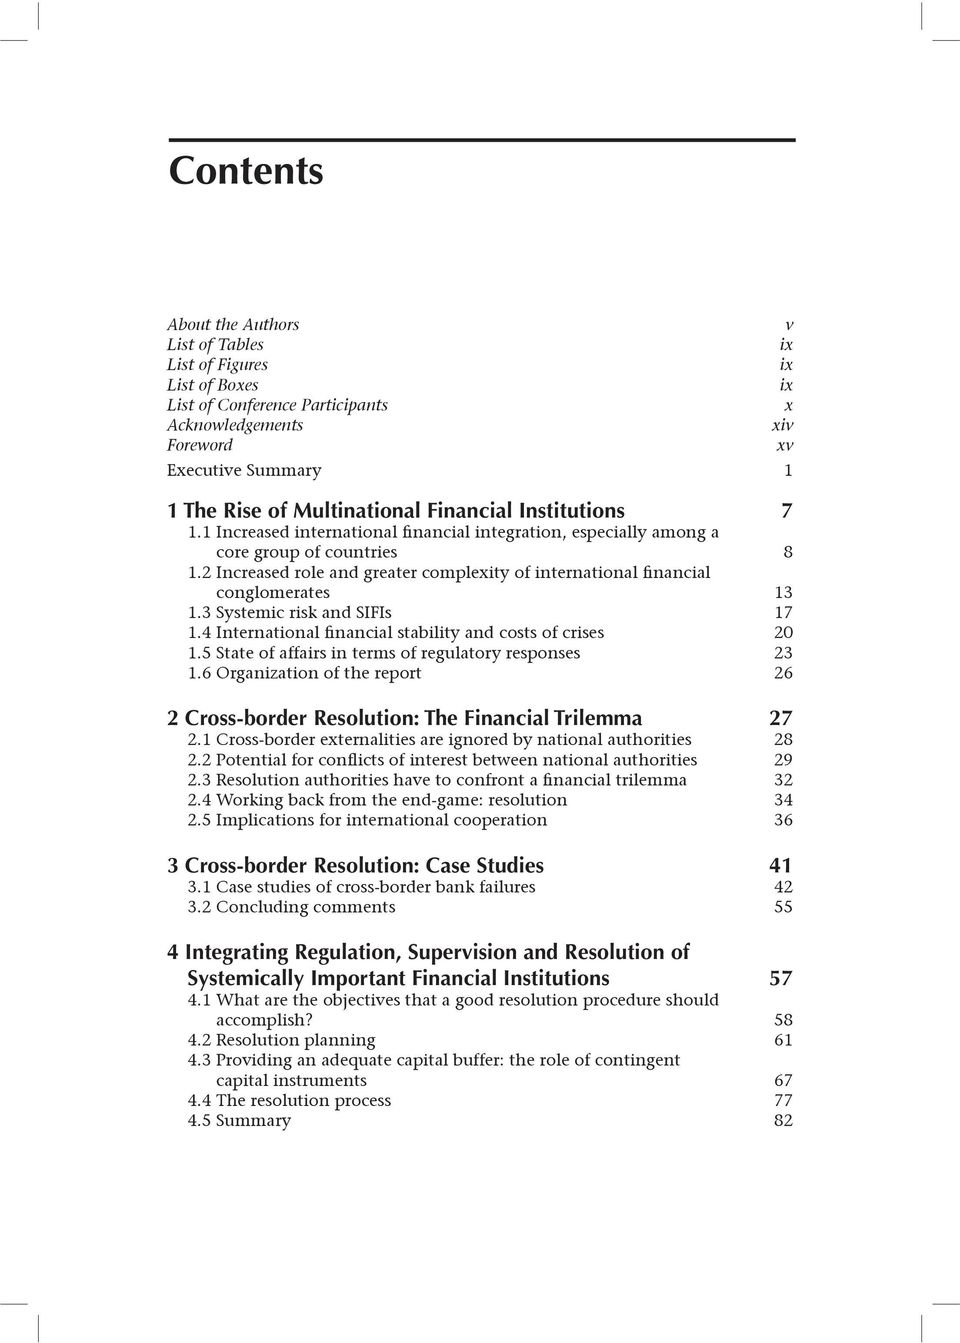 2 Increased role and greater complexity of international financial conglomerates 13 1.3 Systemic risk and SIFIs 17 1.4 International financial stability and costs of crises 20 1.